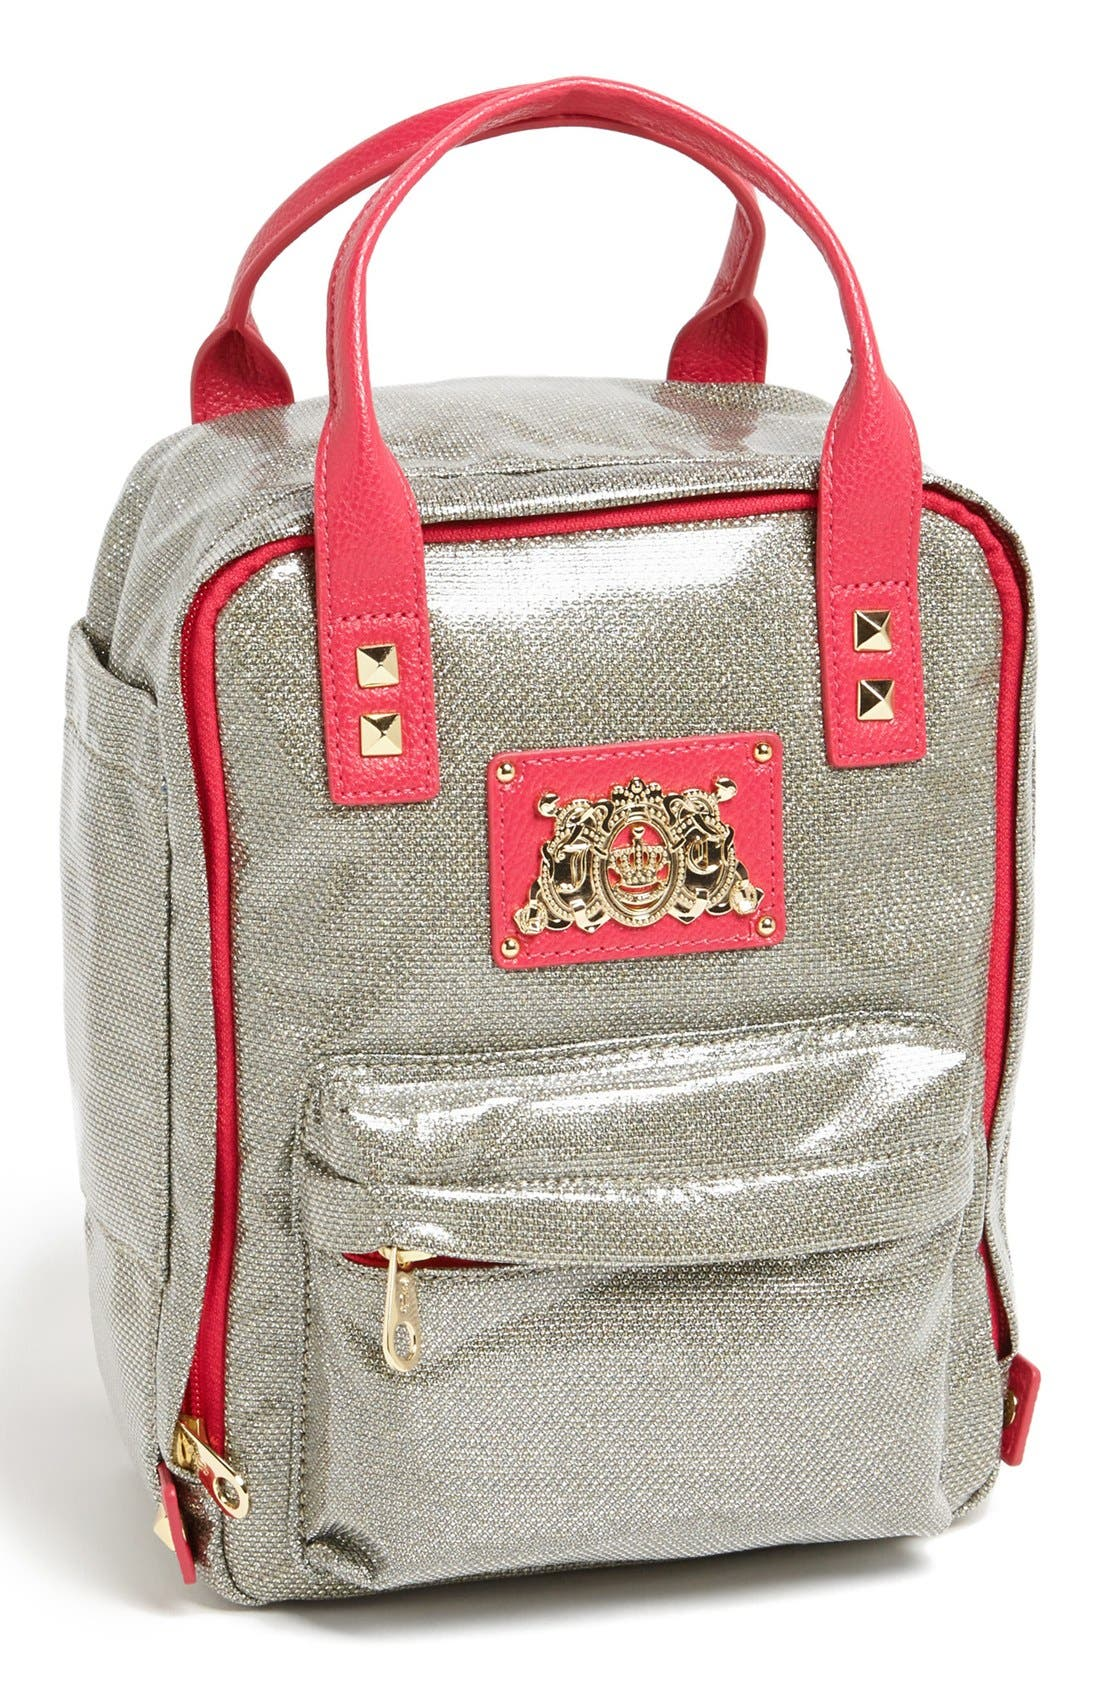 Main Image - Juicy Couture 'Bright Diamond' Backpack (Girls)